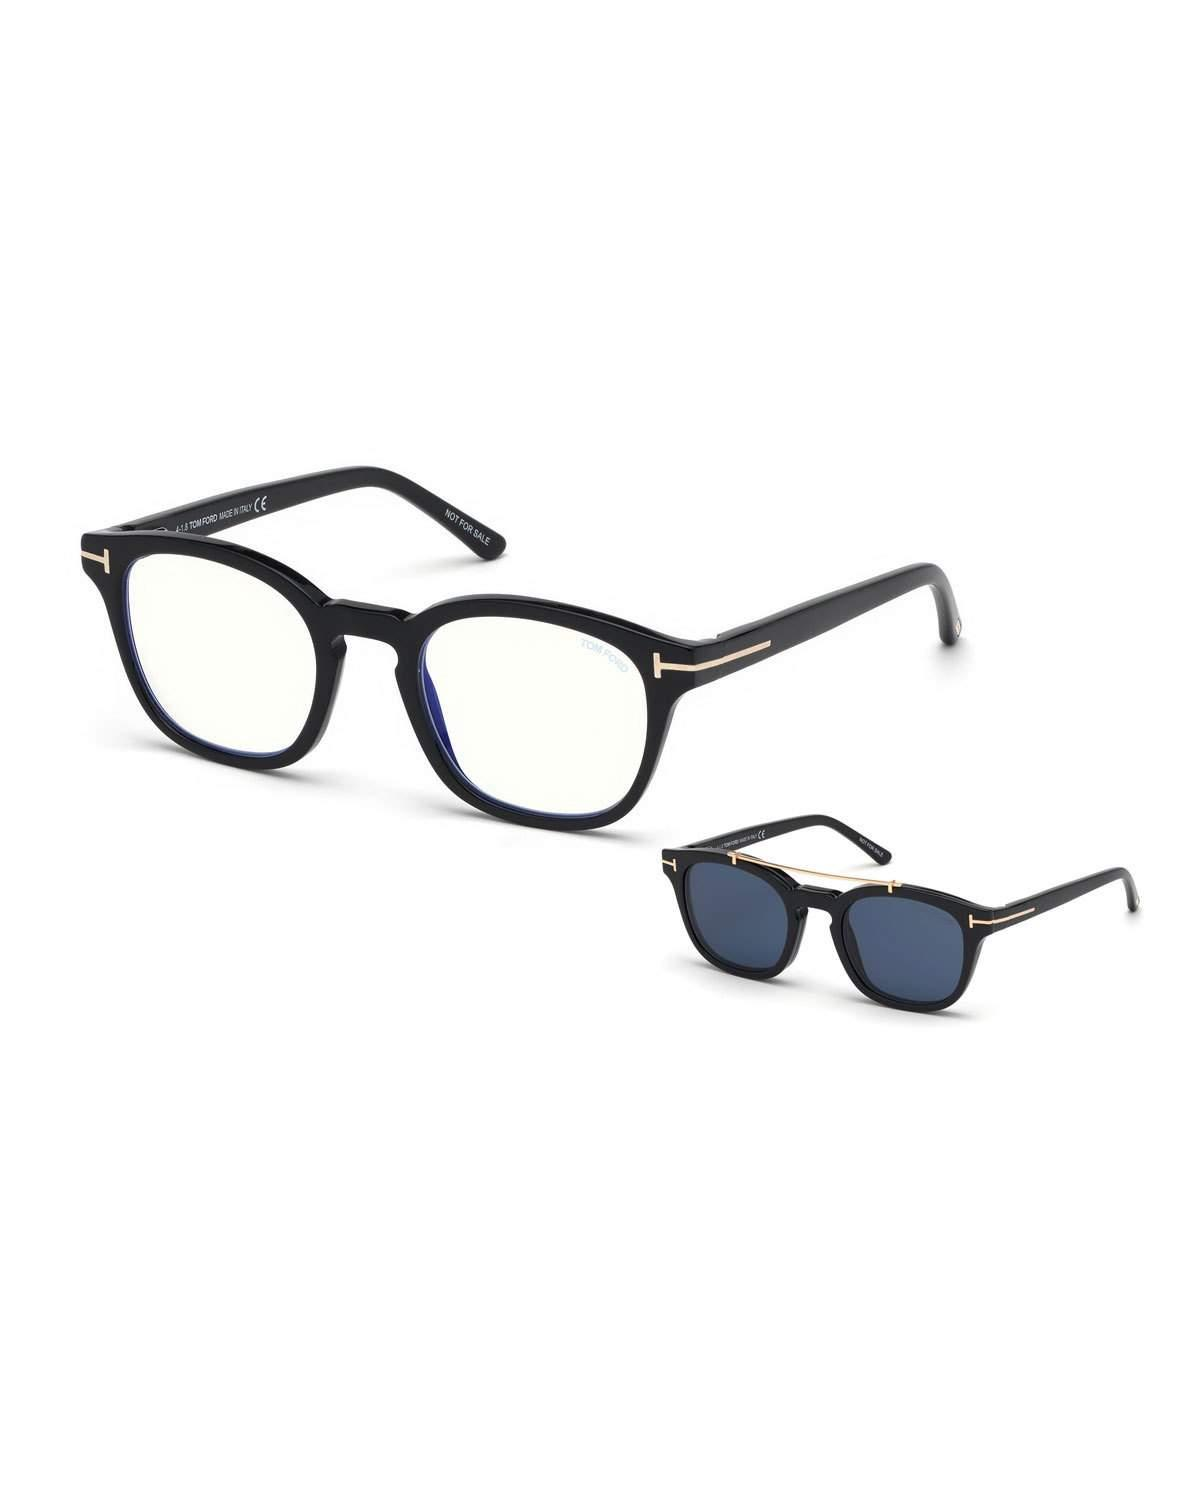 2df17be311a MEN S SQUARE OPTICAL GLASSES W  CLIP ON BLUE BLOCK LENSES. Tom Ford optical  glasses in injected plastic and metal.